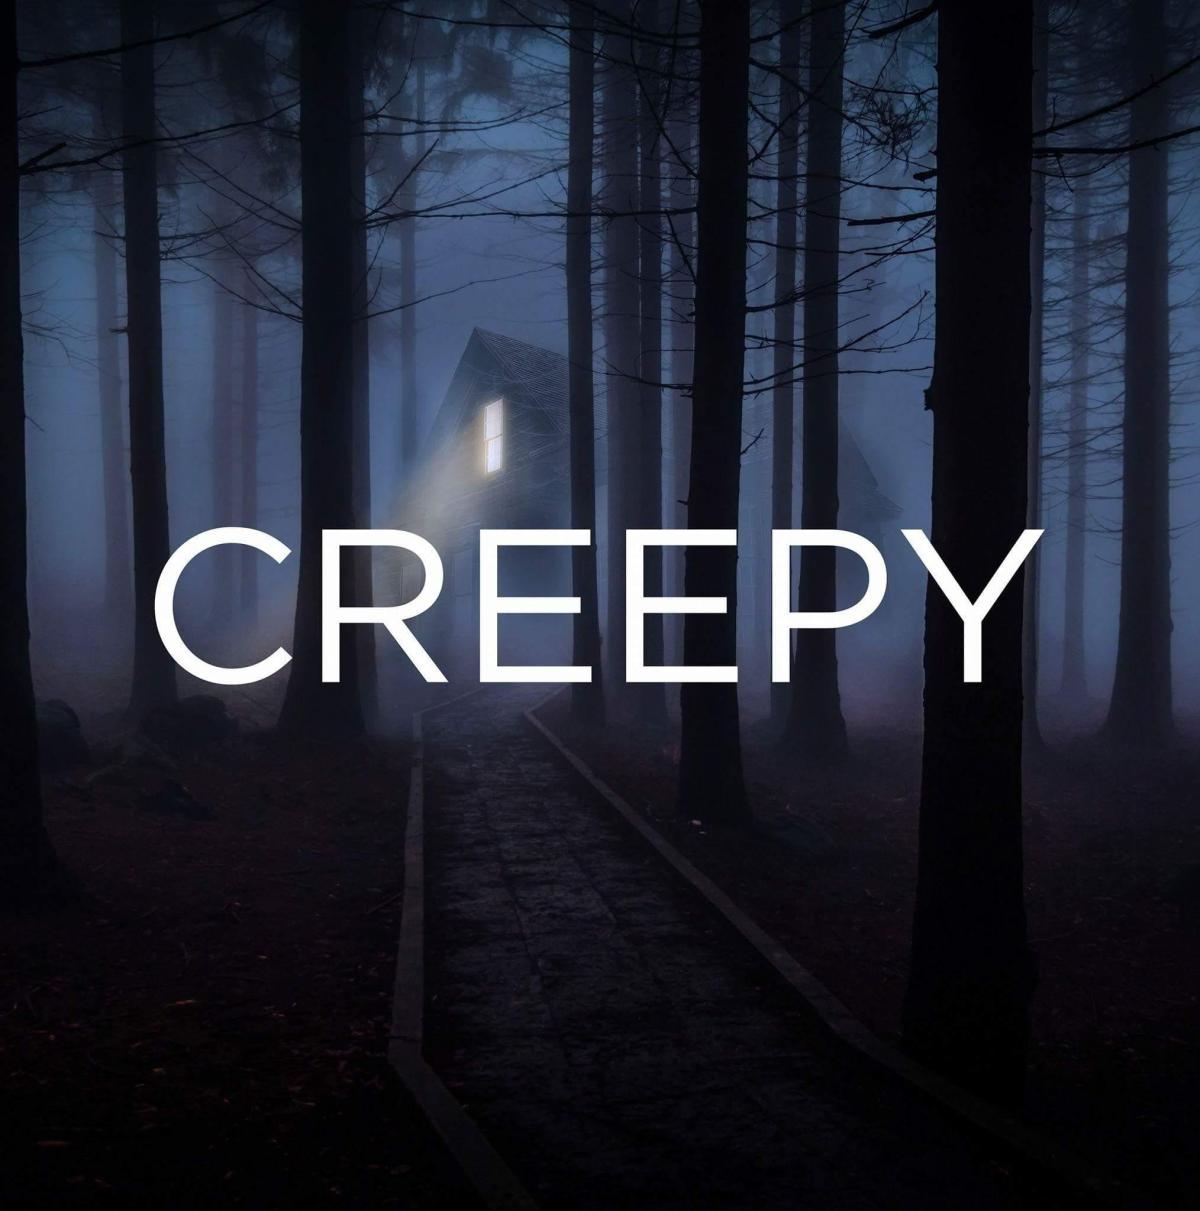 Creepy: 31 days of Horror